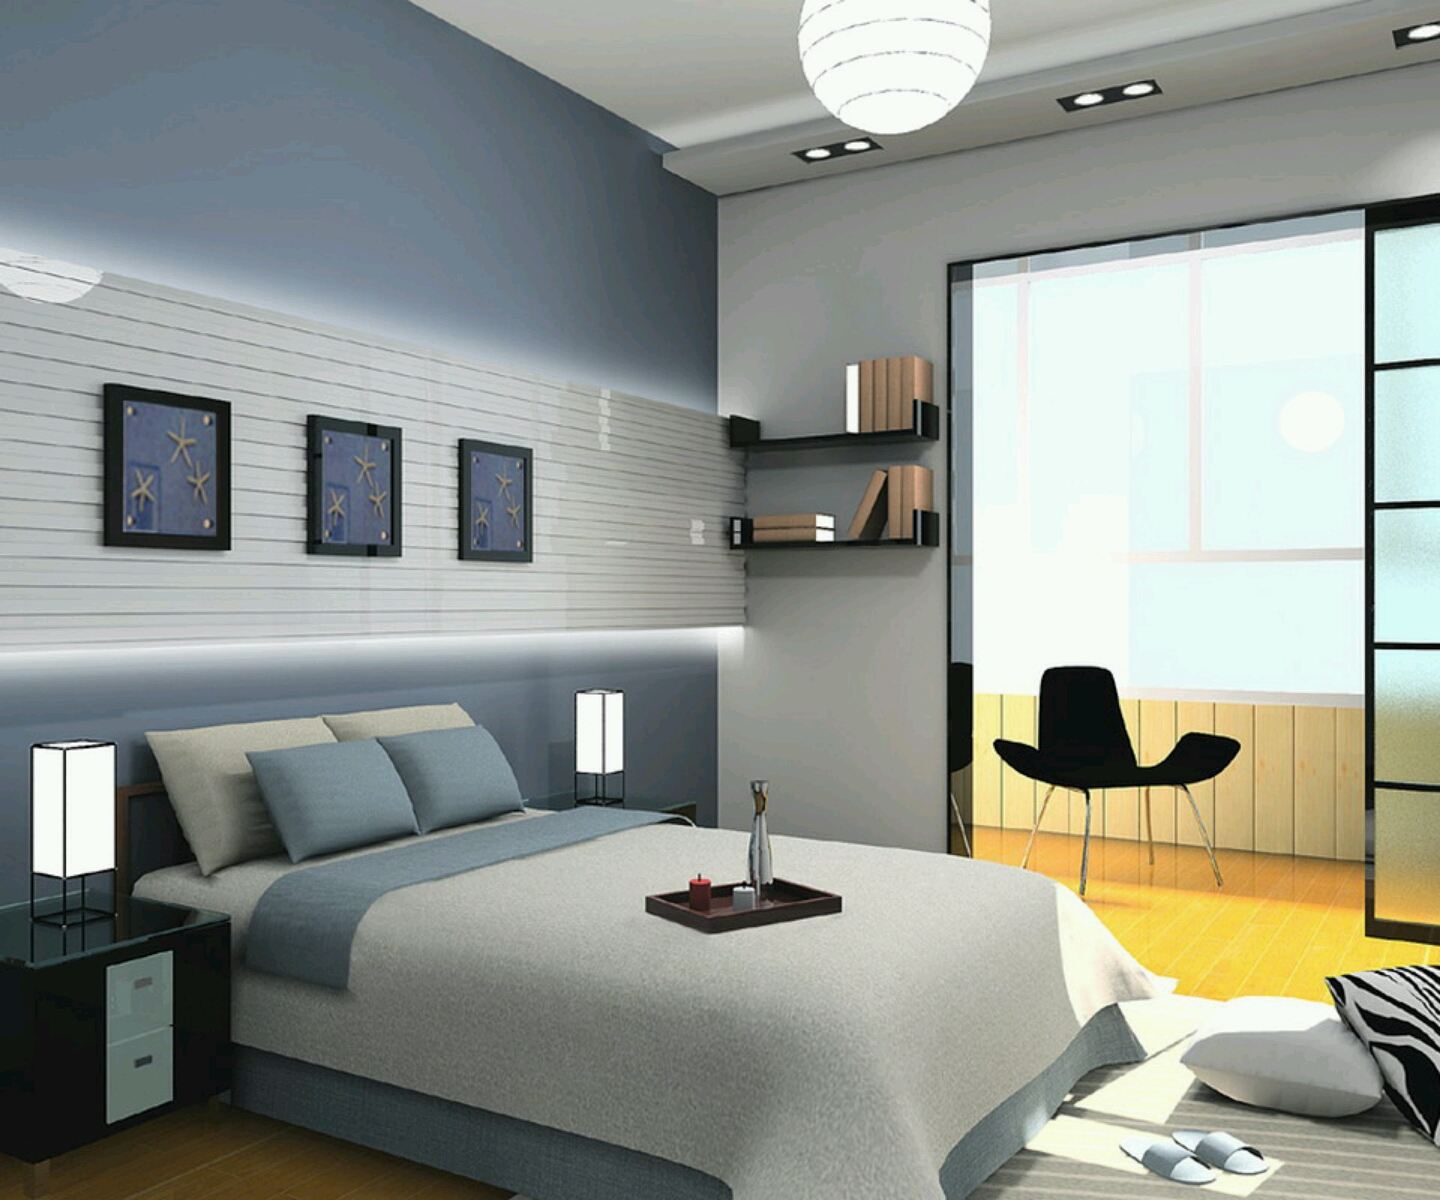 Interior Design For Bedroom Apartment